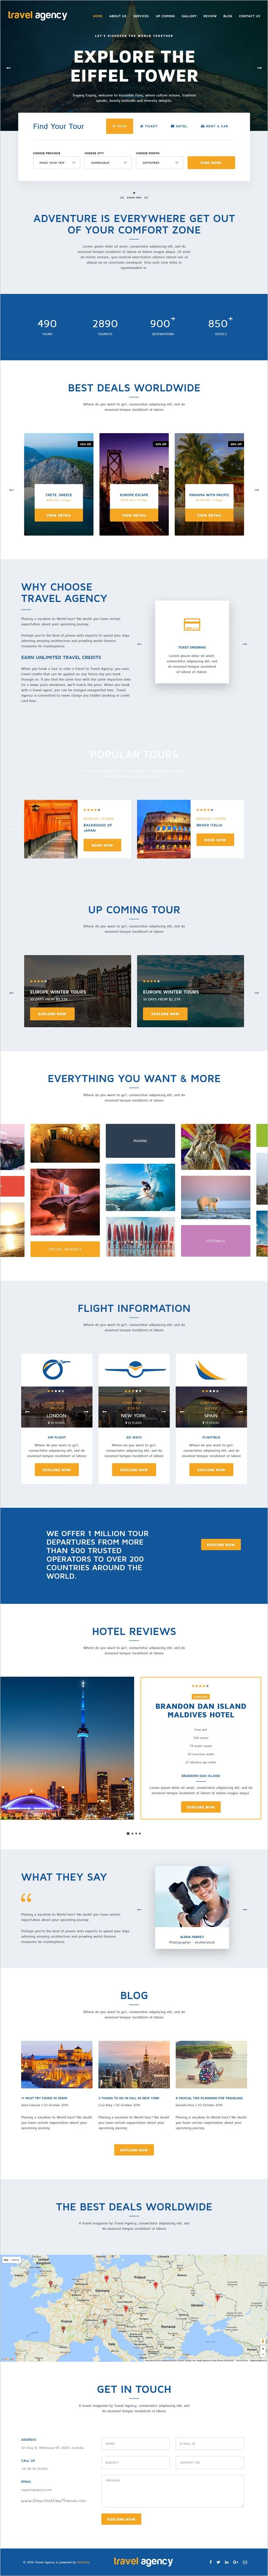 Travel Agency is one of the best #bootstrap HTML template for #travel, hotel, car #rental, flight, cruise and tour booking services website download now➩ https://themeforest.net/item/travel-agency-tour-travel-hotel-booking-html-template/18870743?ref=Datasata